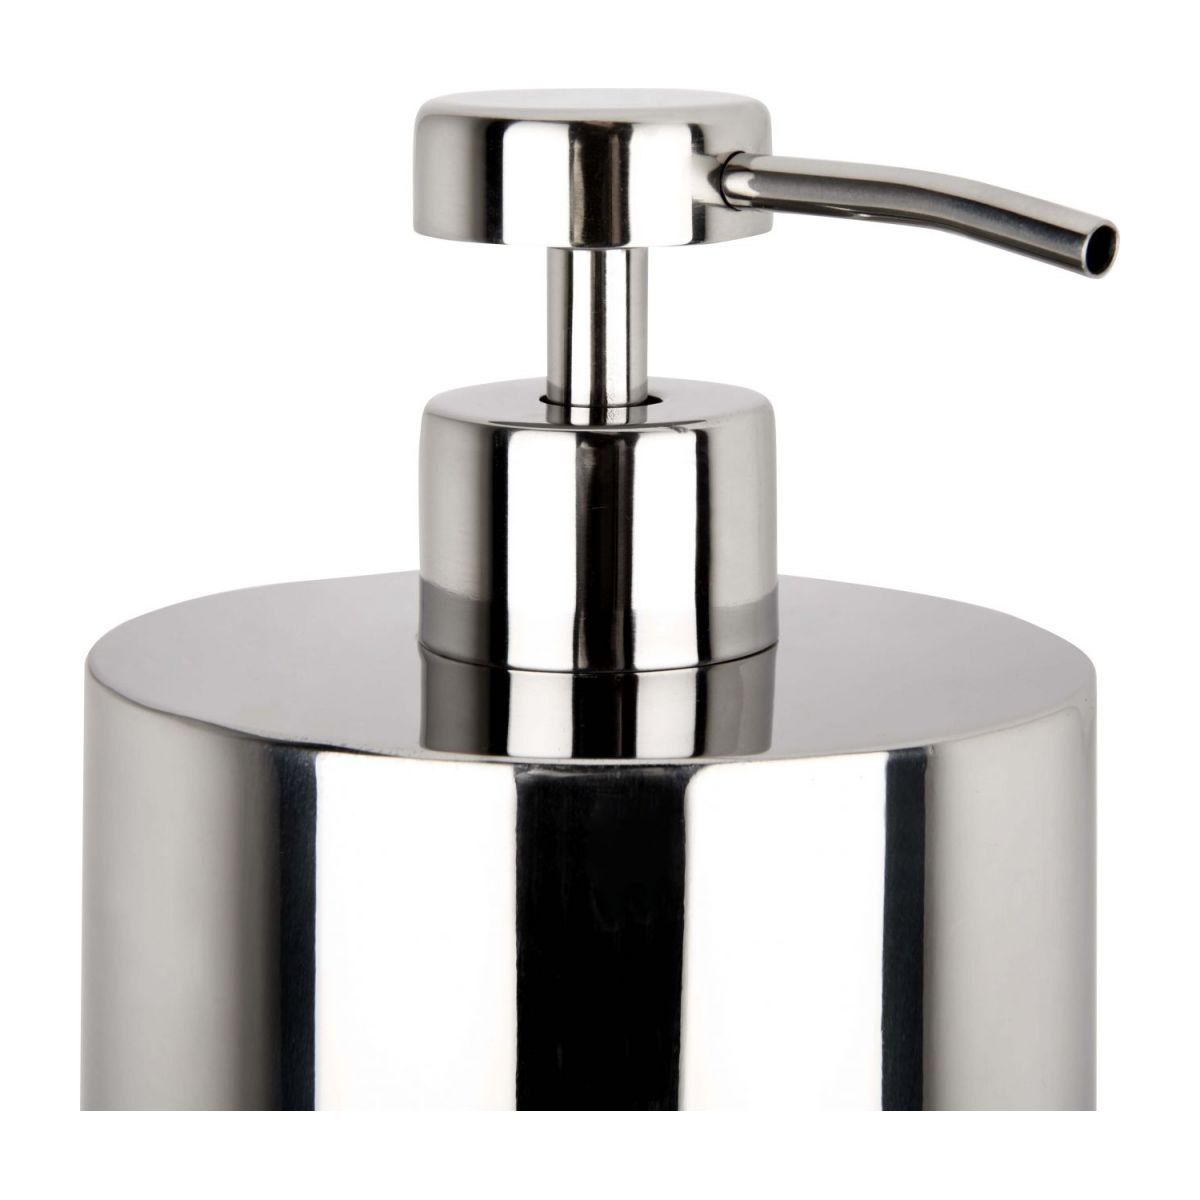 Soap dispenser in stainless steel n°6